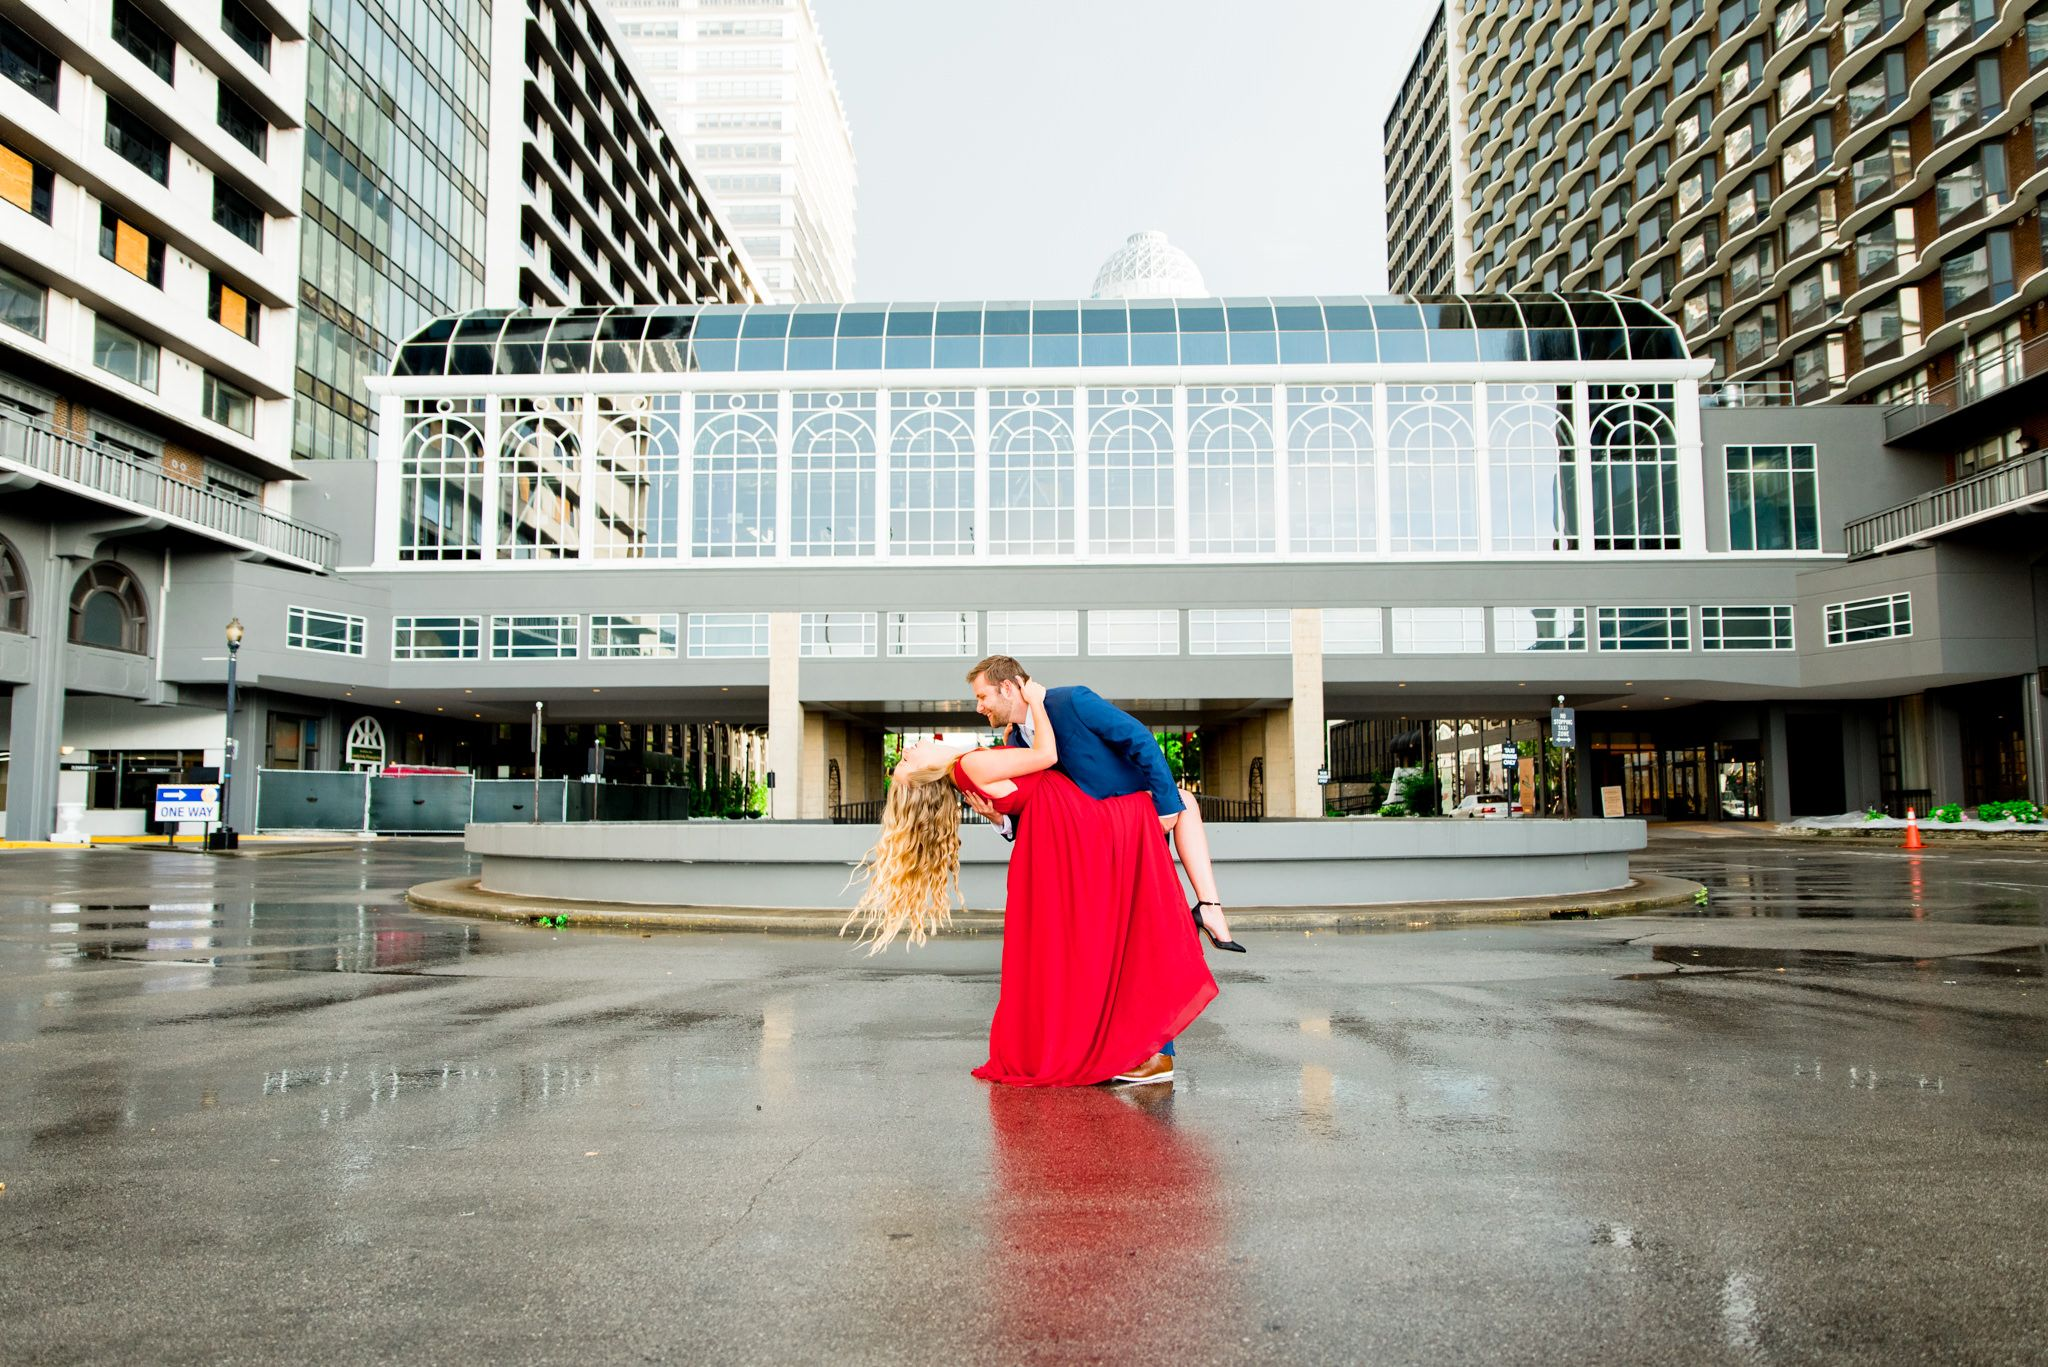 man in navy suit dipping woman in red dress with blonde hair and she laughs